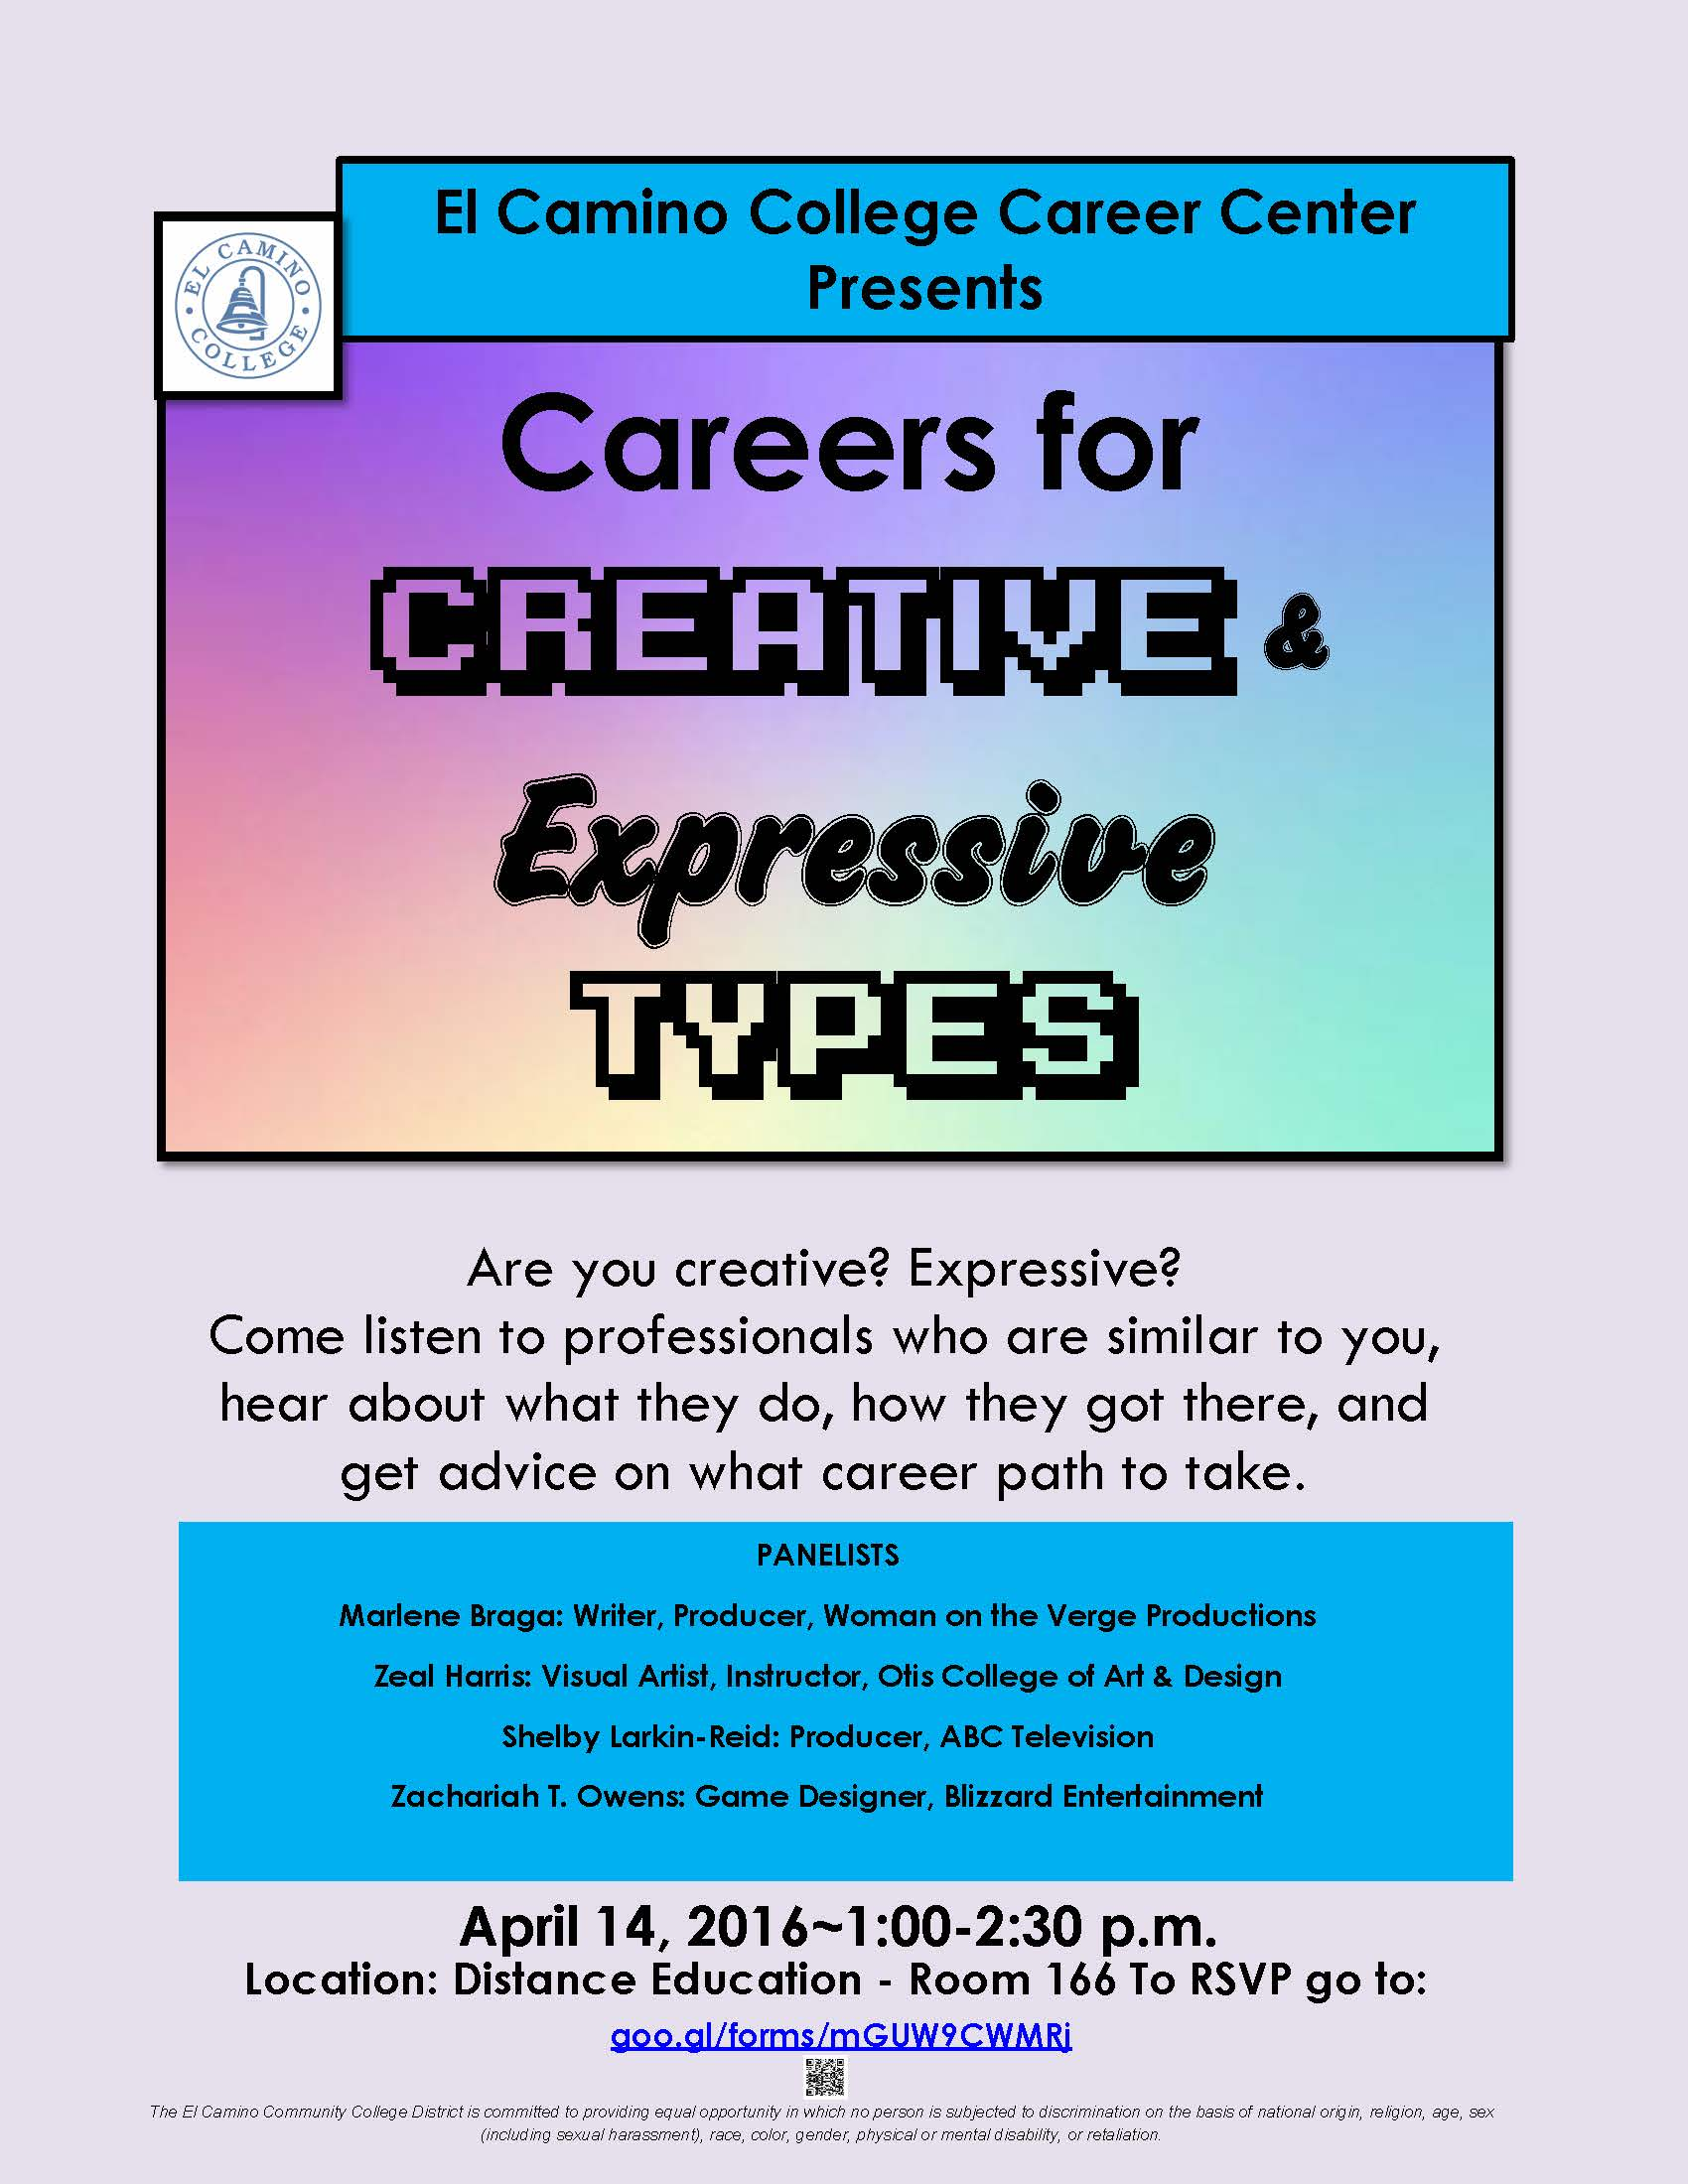 Careers for Creative and Expressive Types